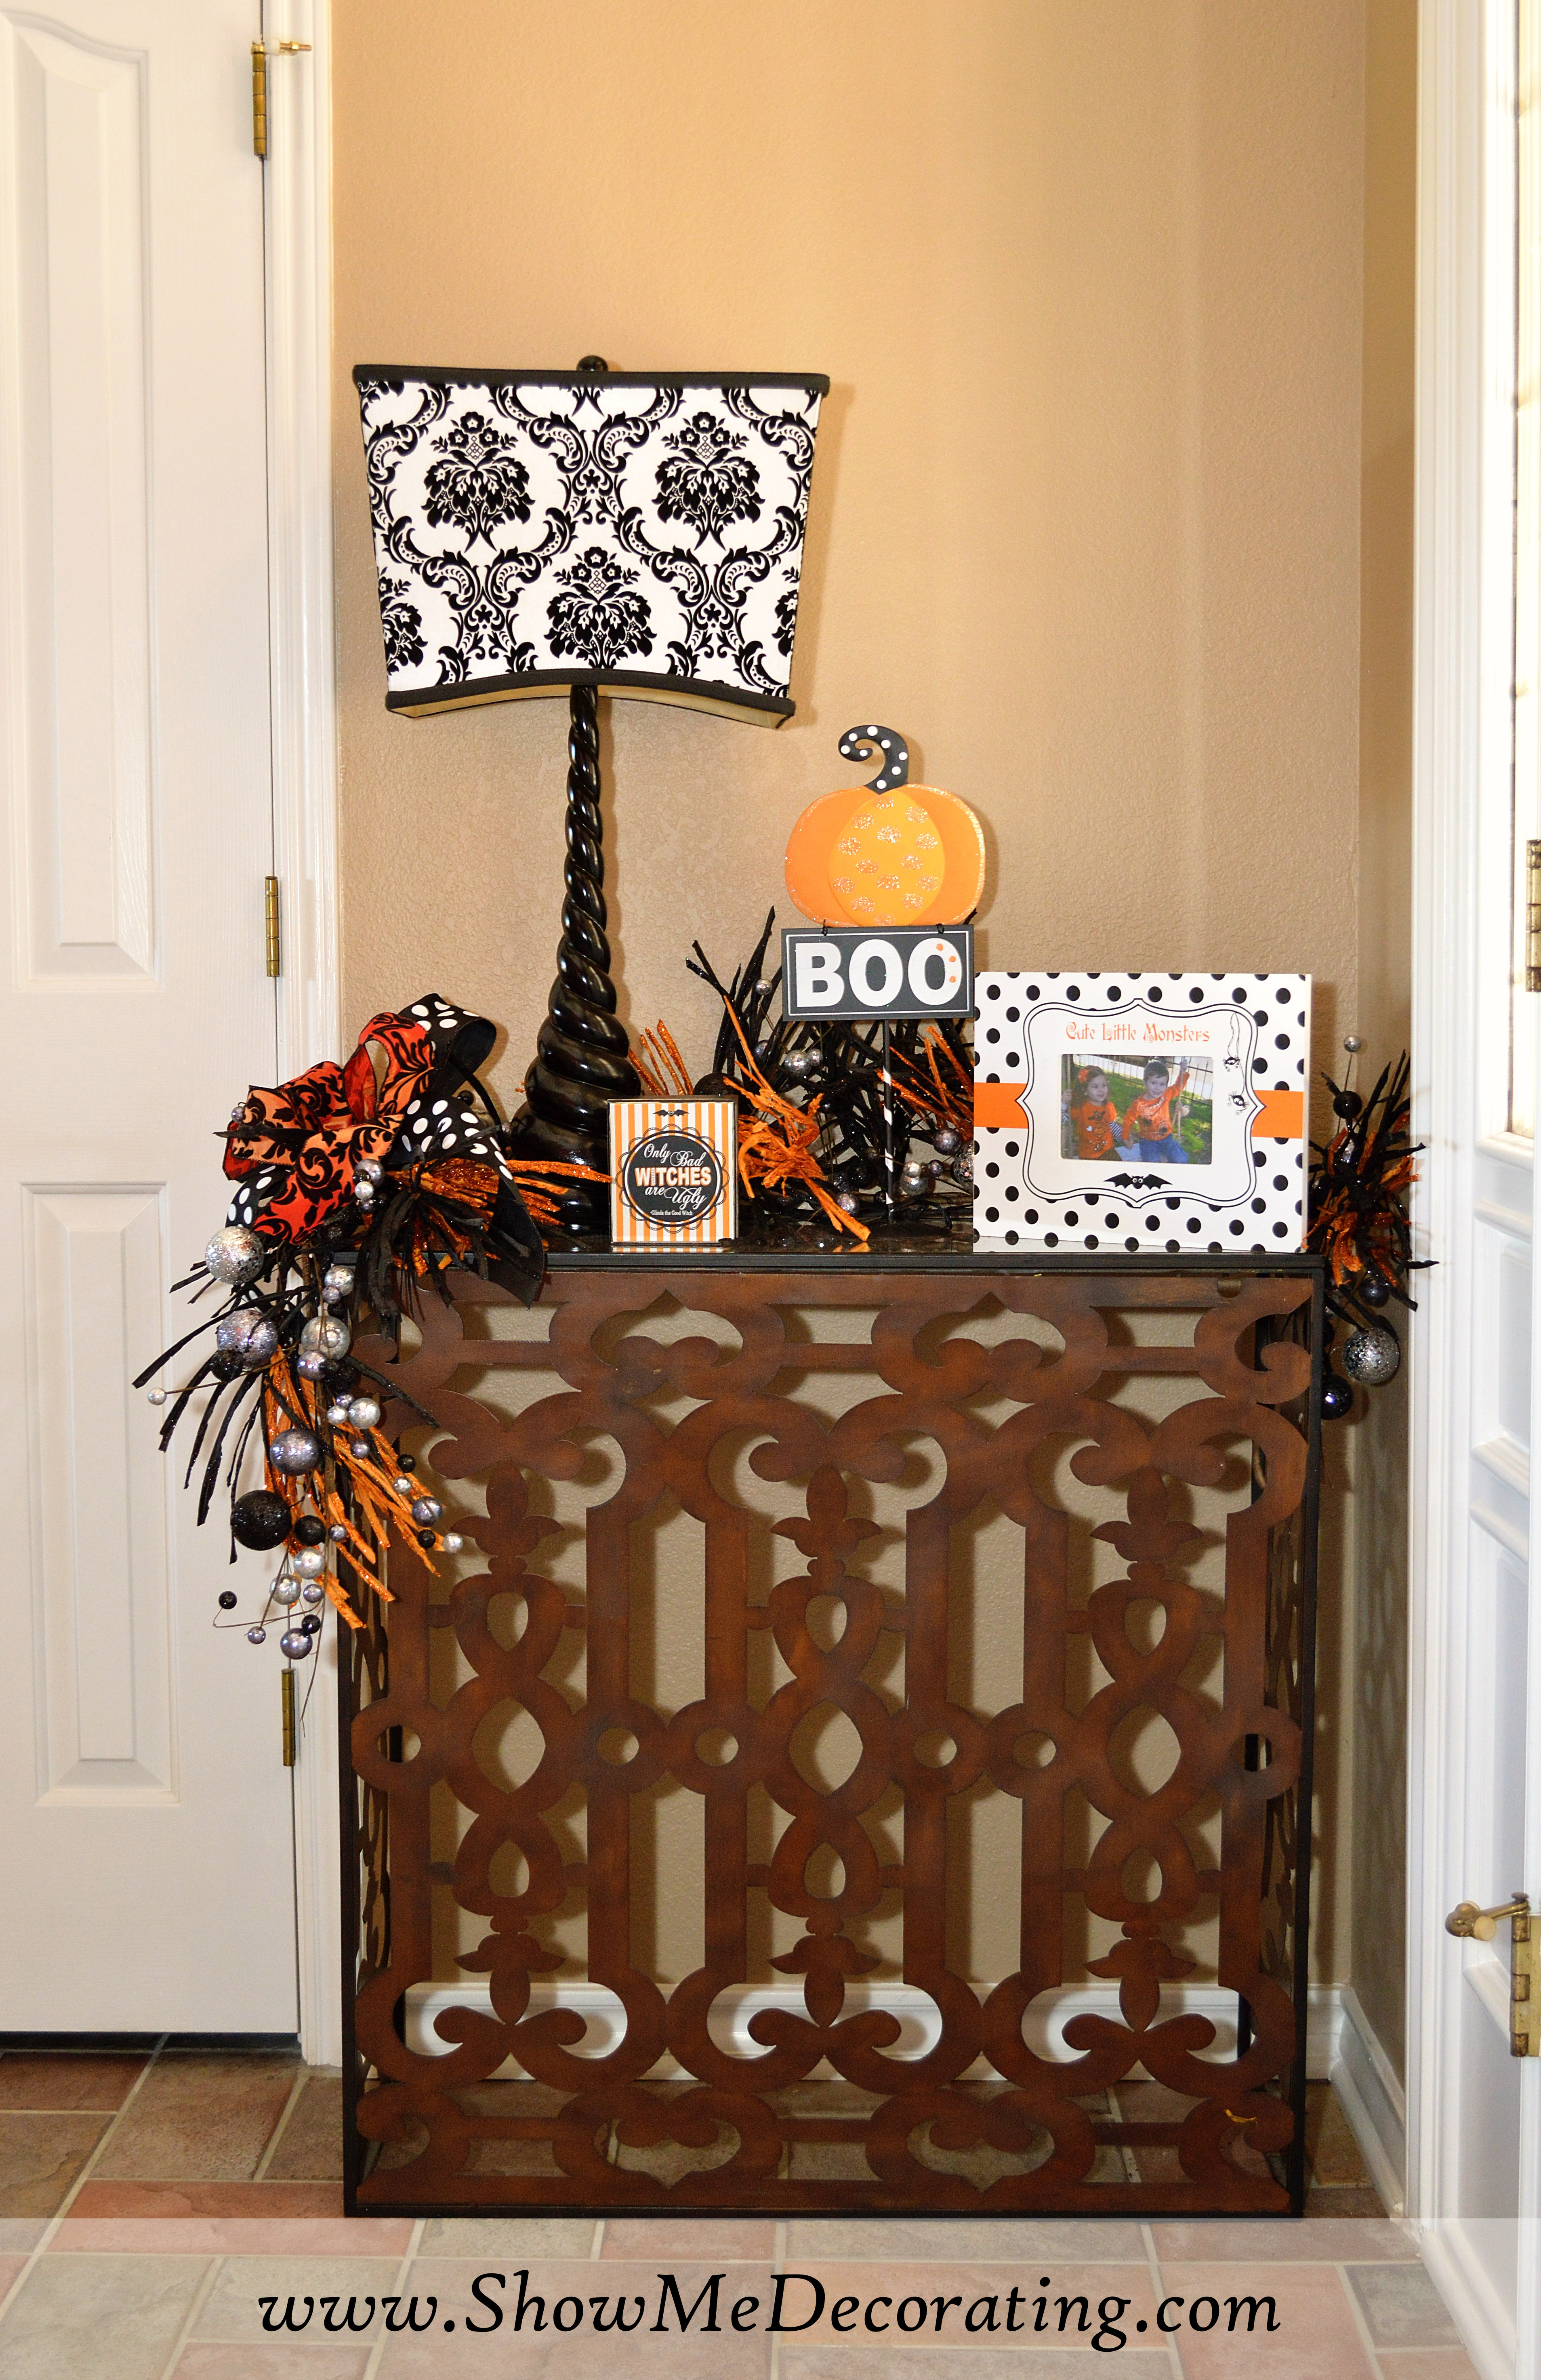 Enter if you dareHalloween entry! Show Me Decorating - Show Me Halloween Decorations